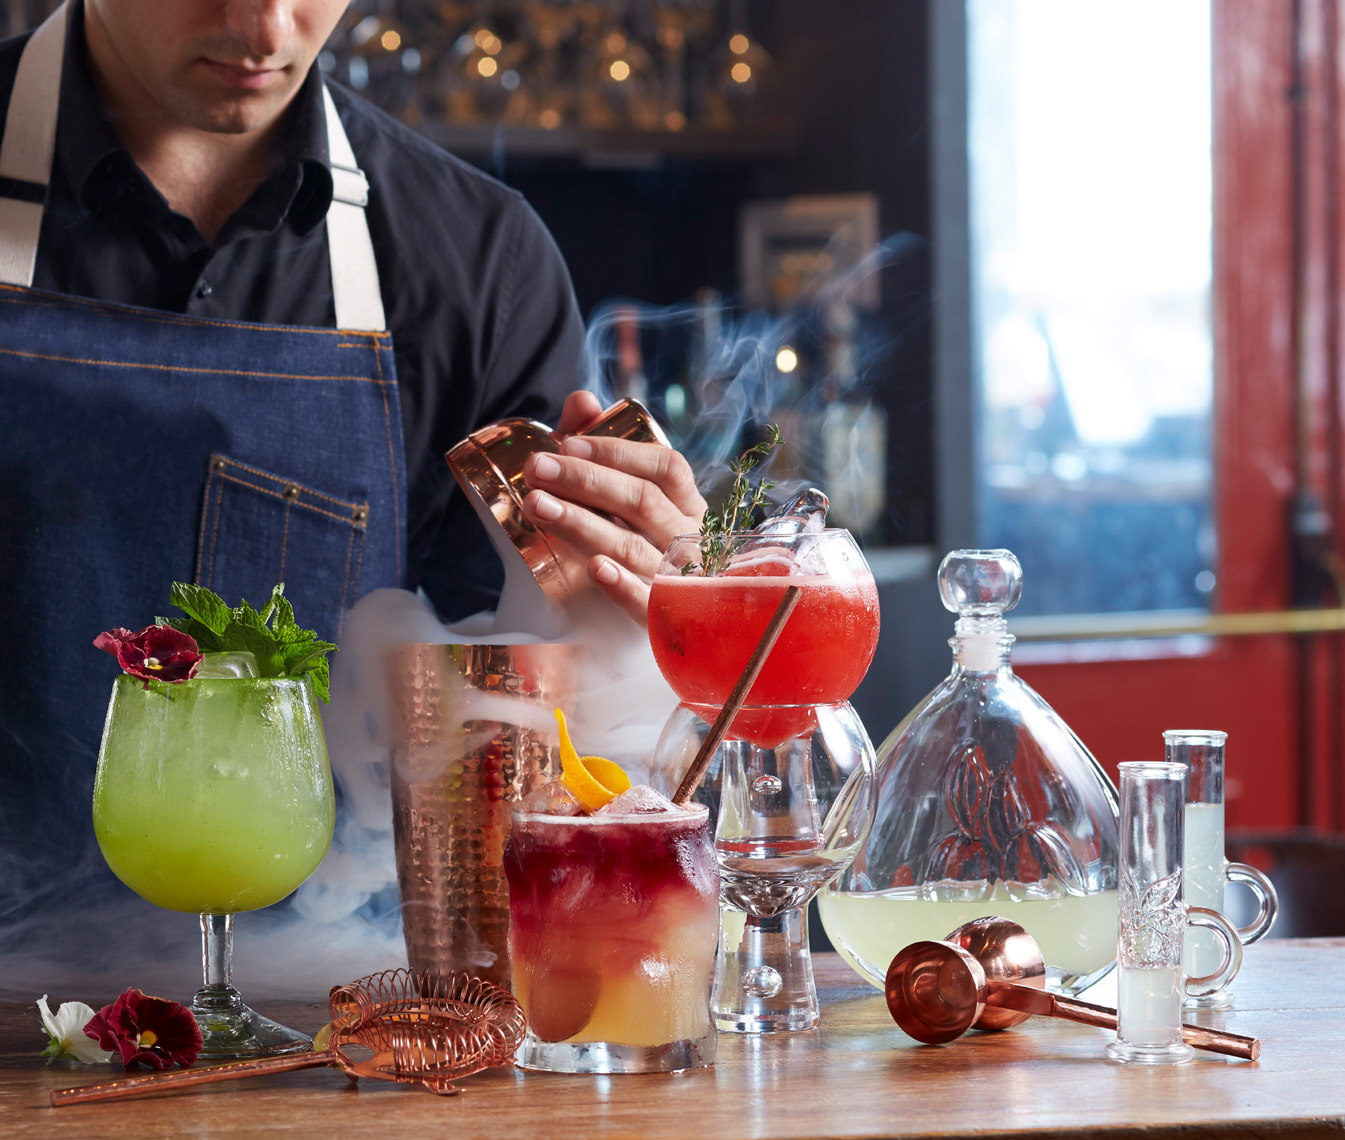 bartender using cocktail shaker and dry ice to make smoking drink with other martinis and beverages